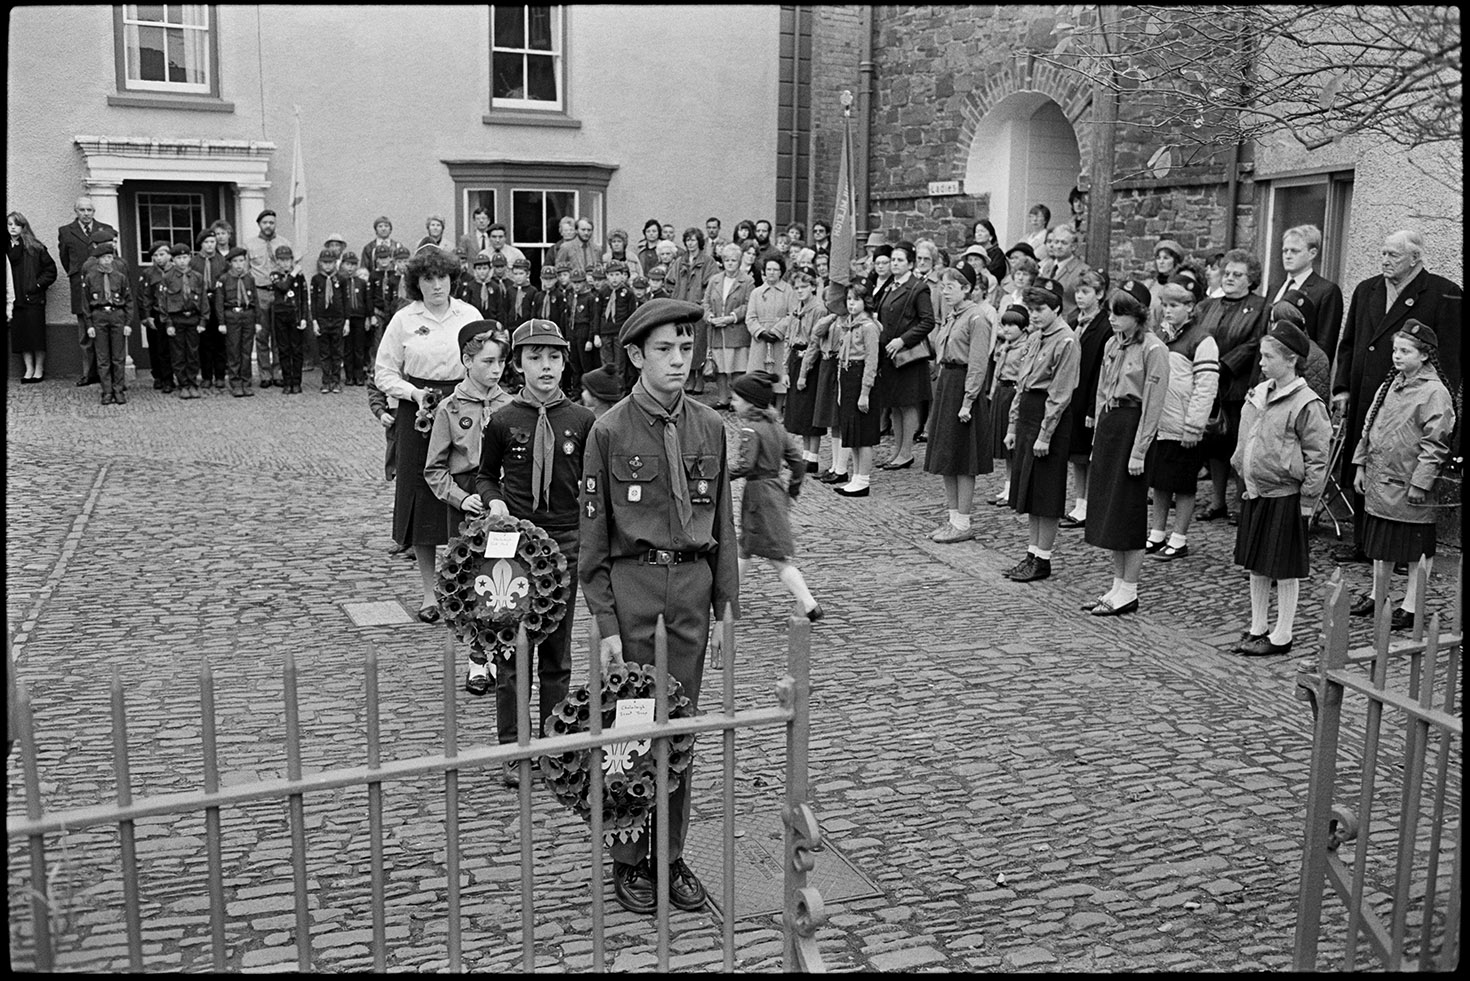 Parade at Memorial, laying wreaths by boy scouts.  Chulmleigh, November 1987